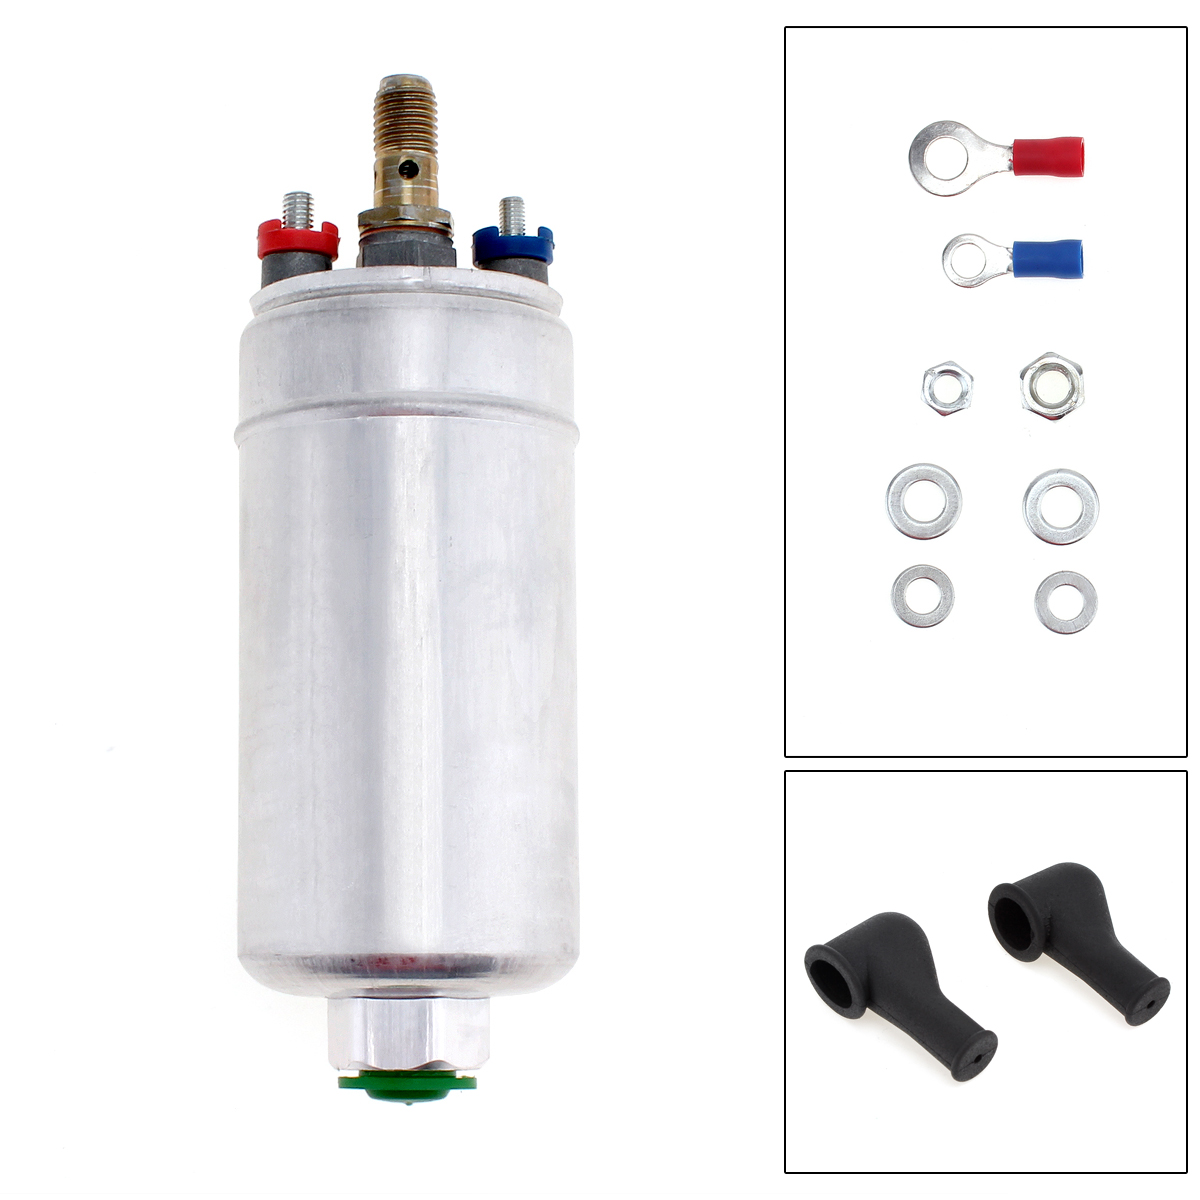 12V Universal Metal External Inline 300LPH Fuel Pump Replacement with 72.5 PSI Suitable forFerrari / Mitsubishi / Porsche|fuel pump|fuel pump replacementinline fuel pump - title=